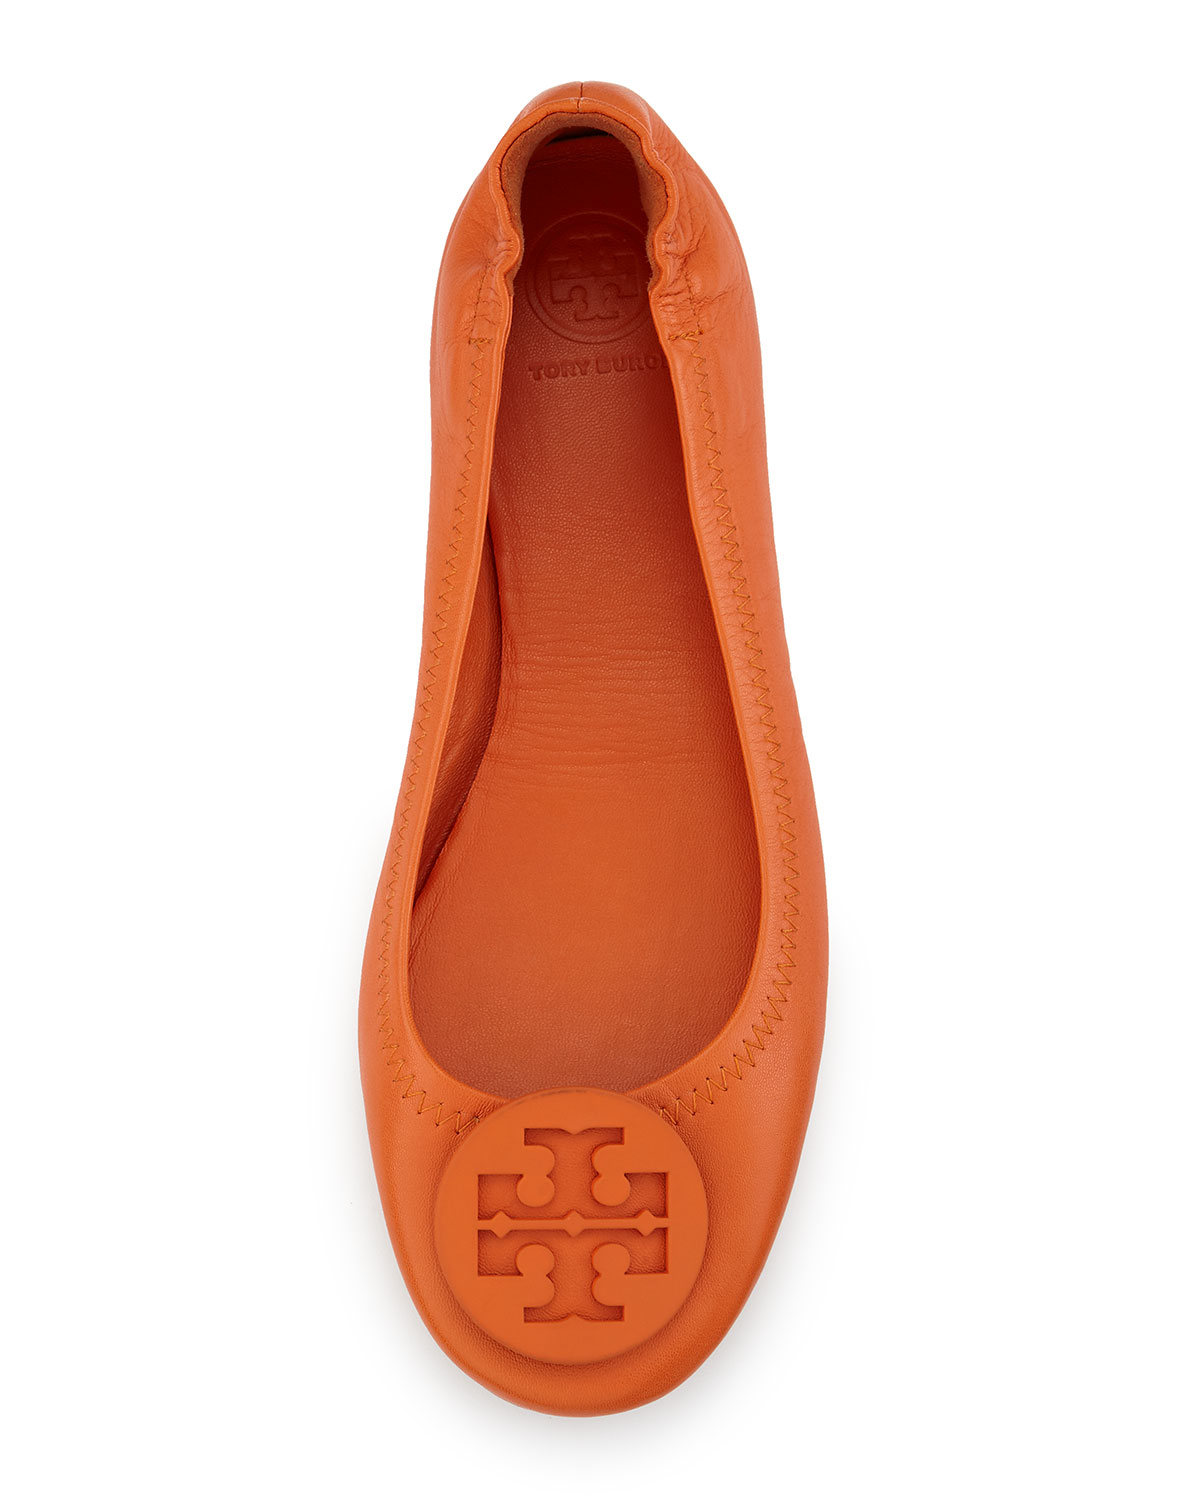 Tory Burch Packable Leather Travel Flat